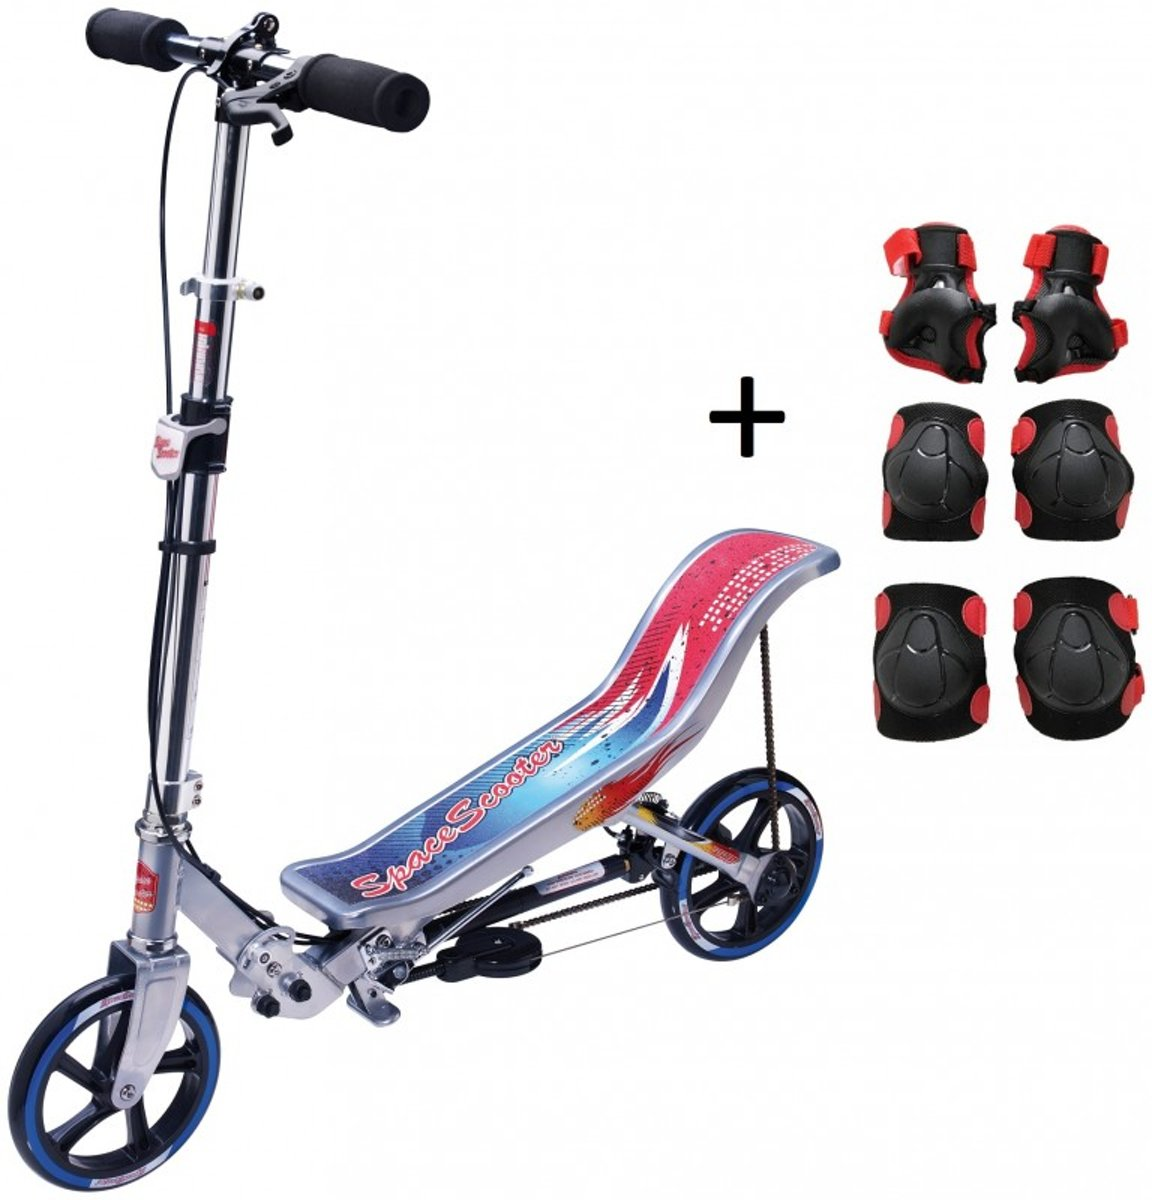 Space Scooter X580 - Step - Zilver / Blauw - Limited Edition + ThysToys Beschermset